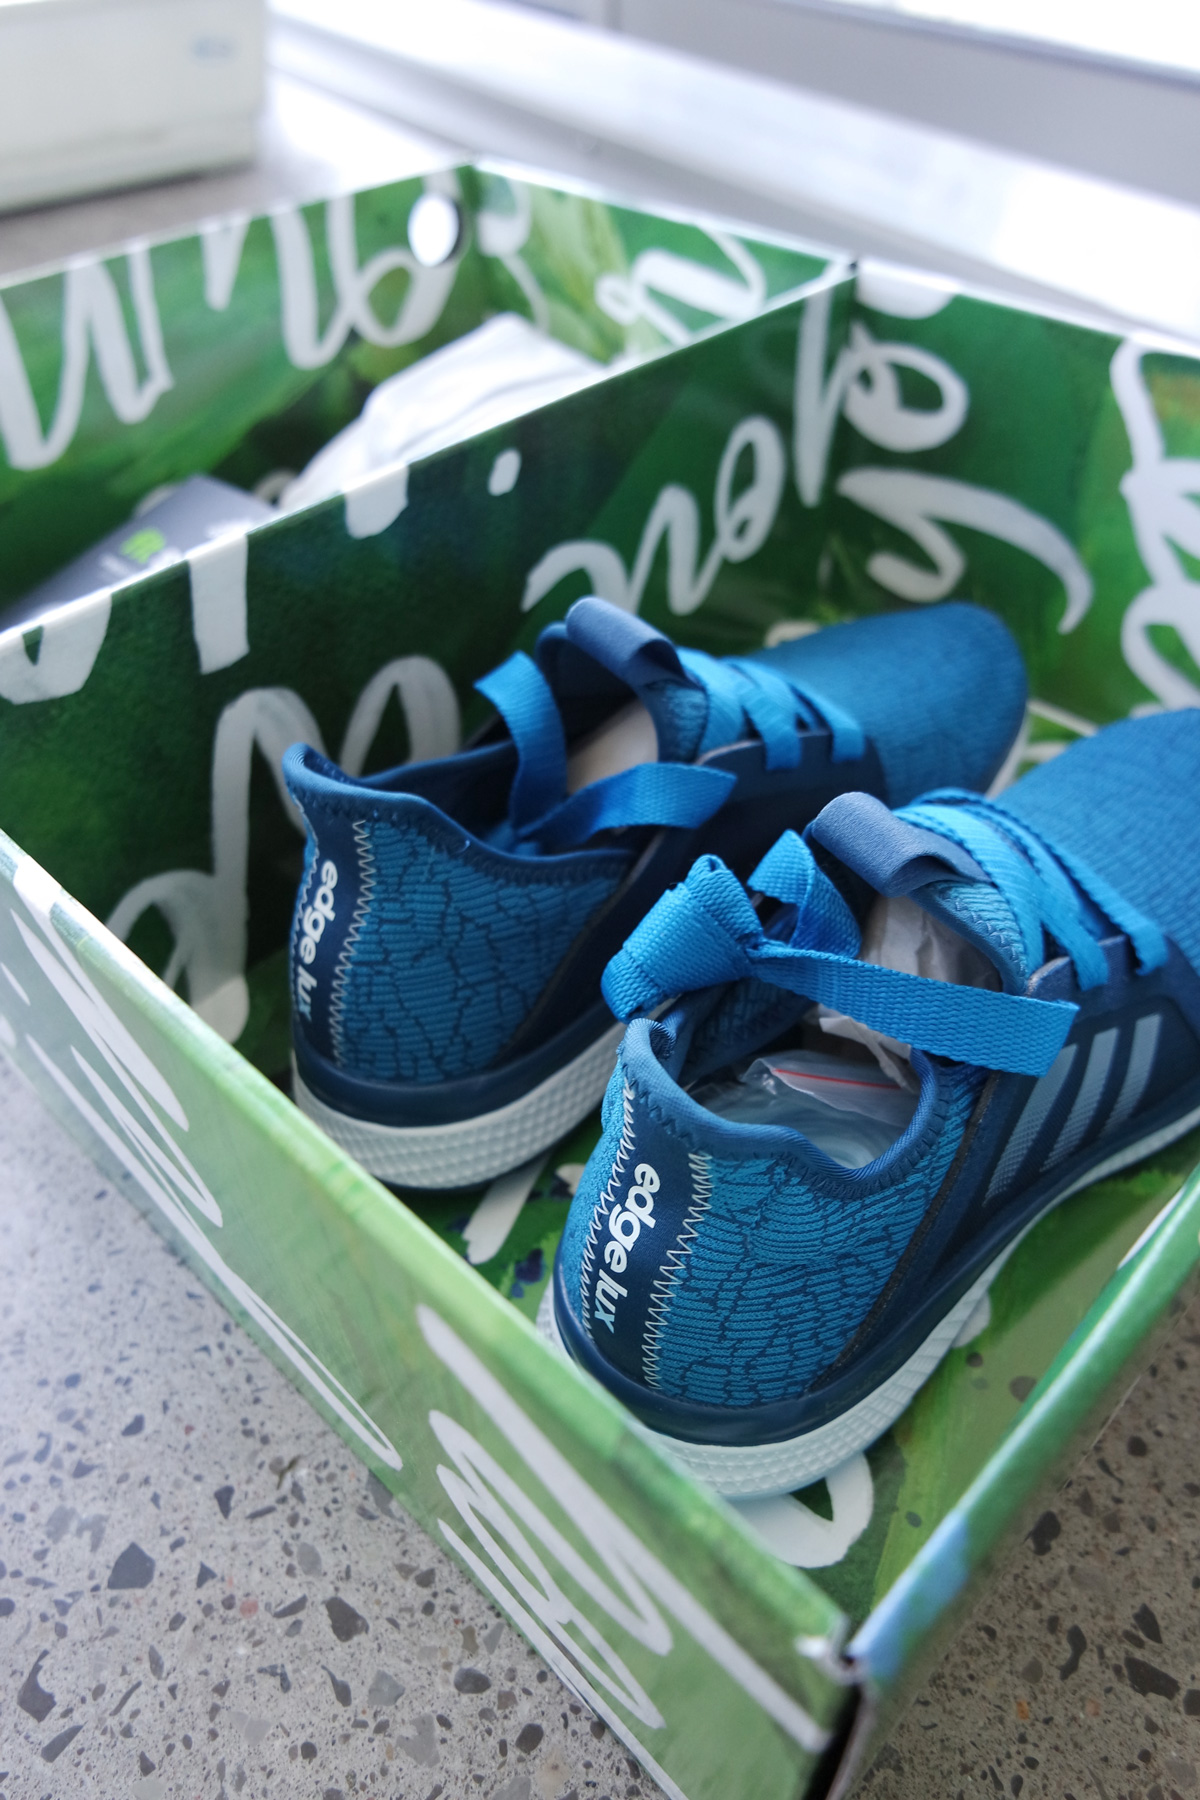 Hand Lettered Adidas Subscription Box